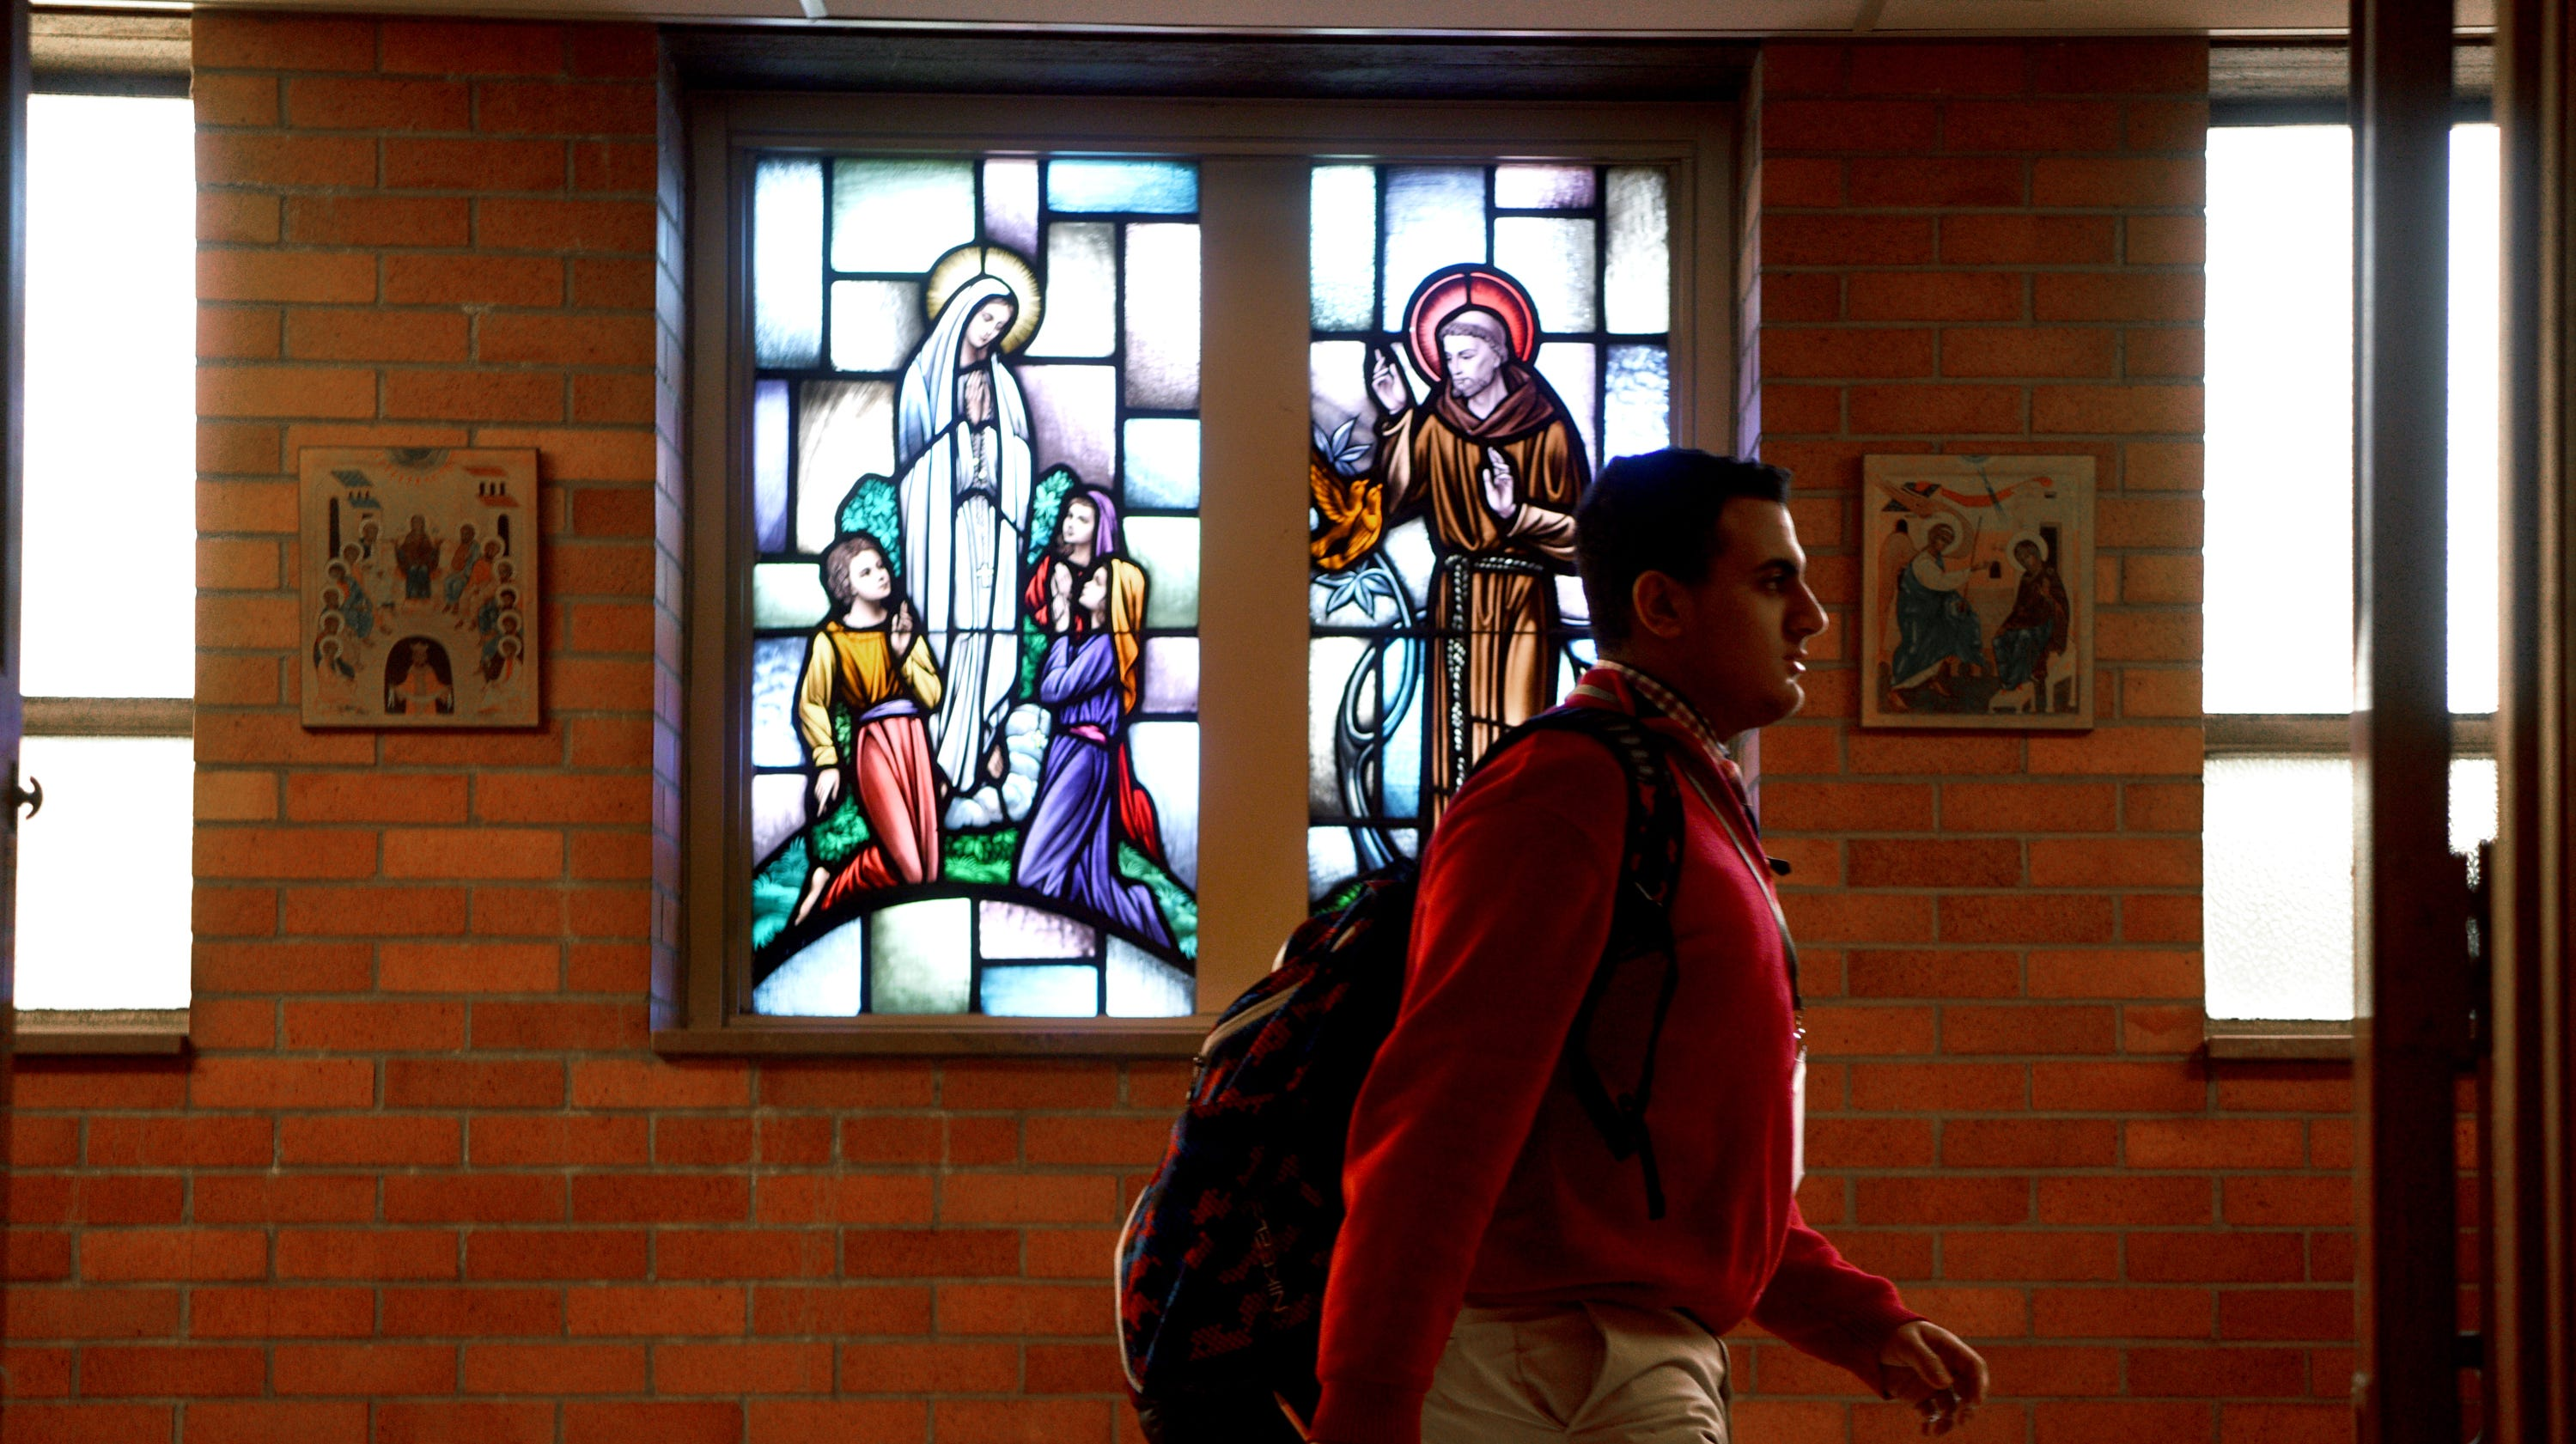 Catholic schools search for creative ways to survive in increasing competitive landscape